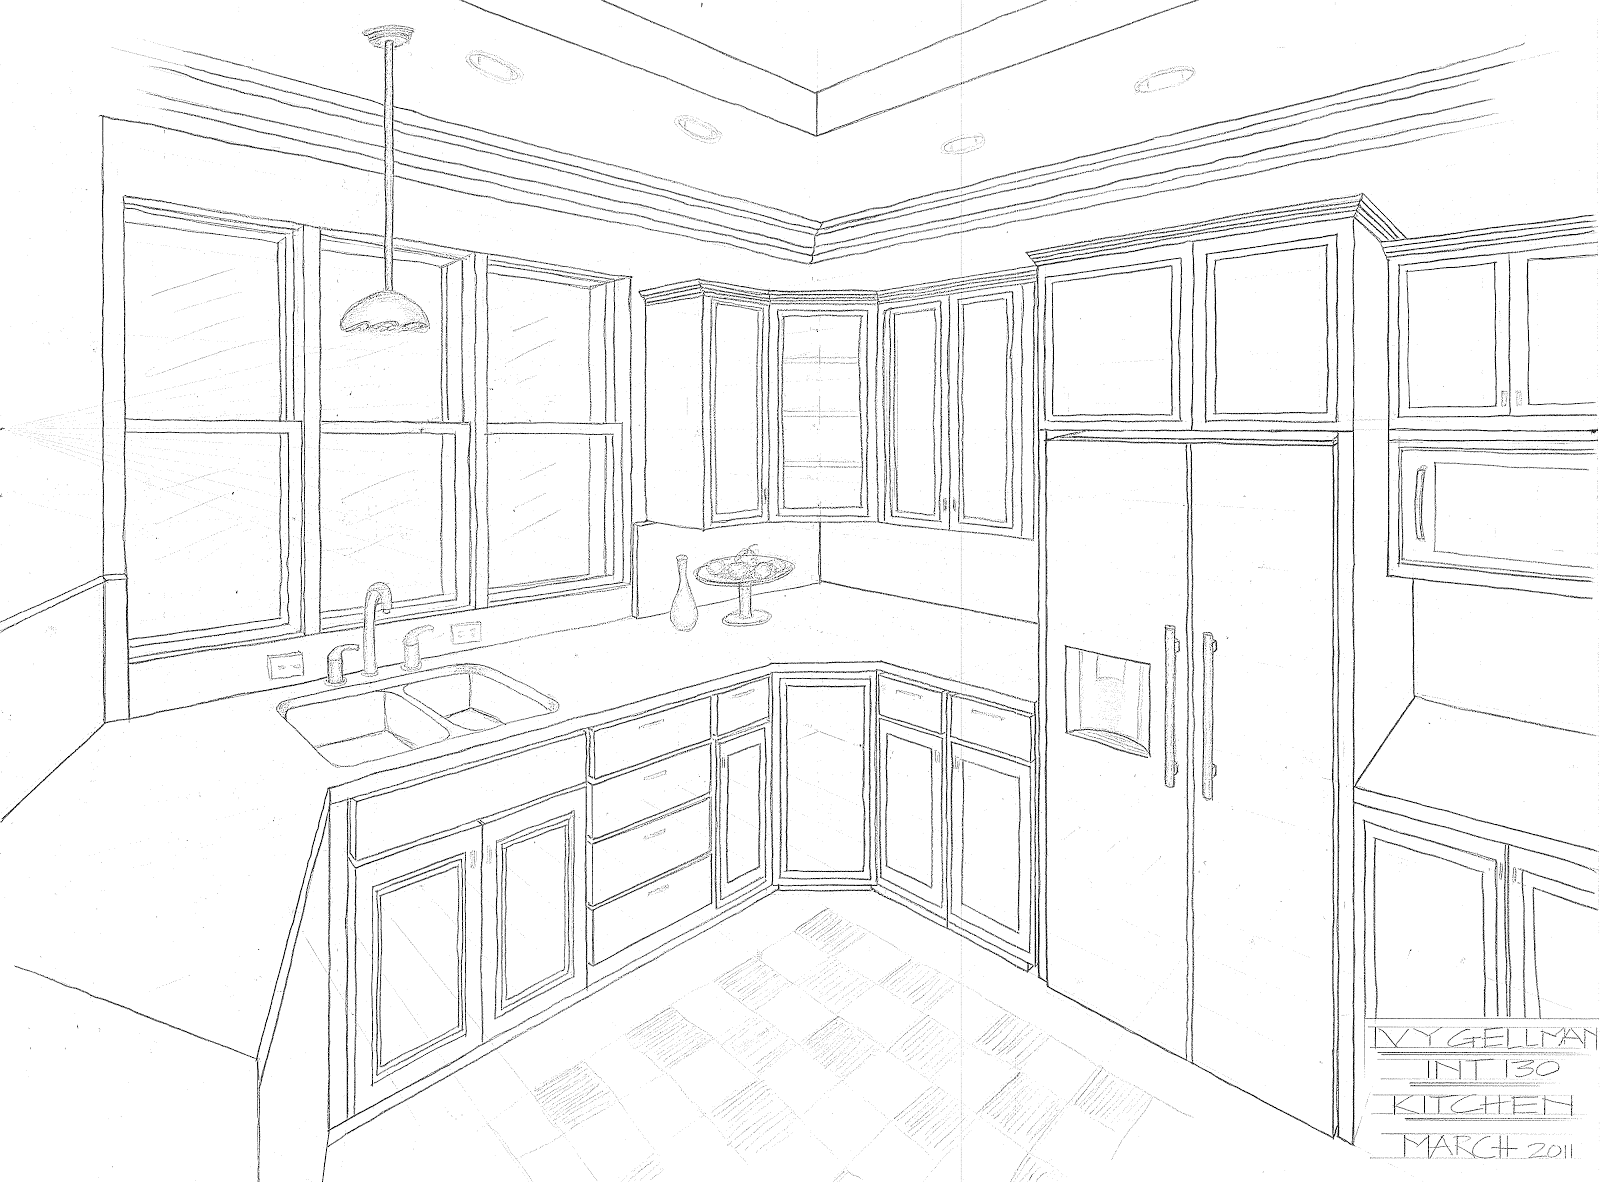 Interior Design Perspective Drawing : kitchen from ivyinteriordesign.blogspot.com size 1600 x 1182 png 744kB